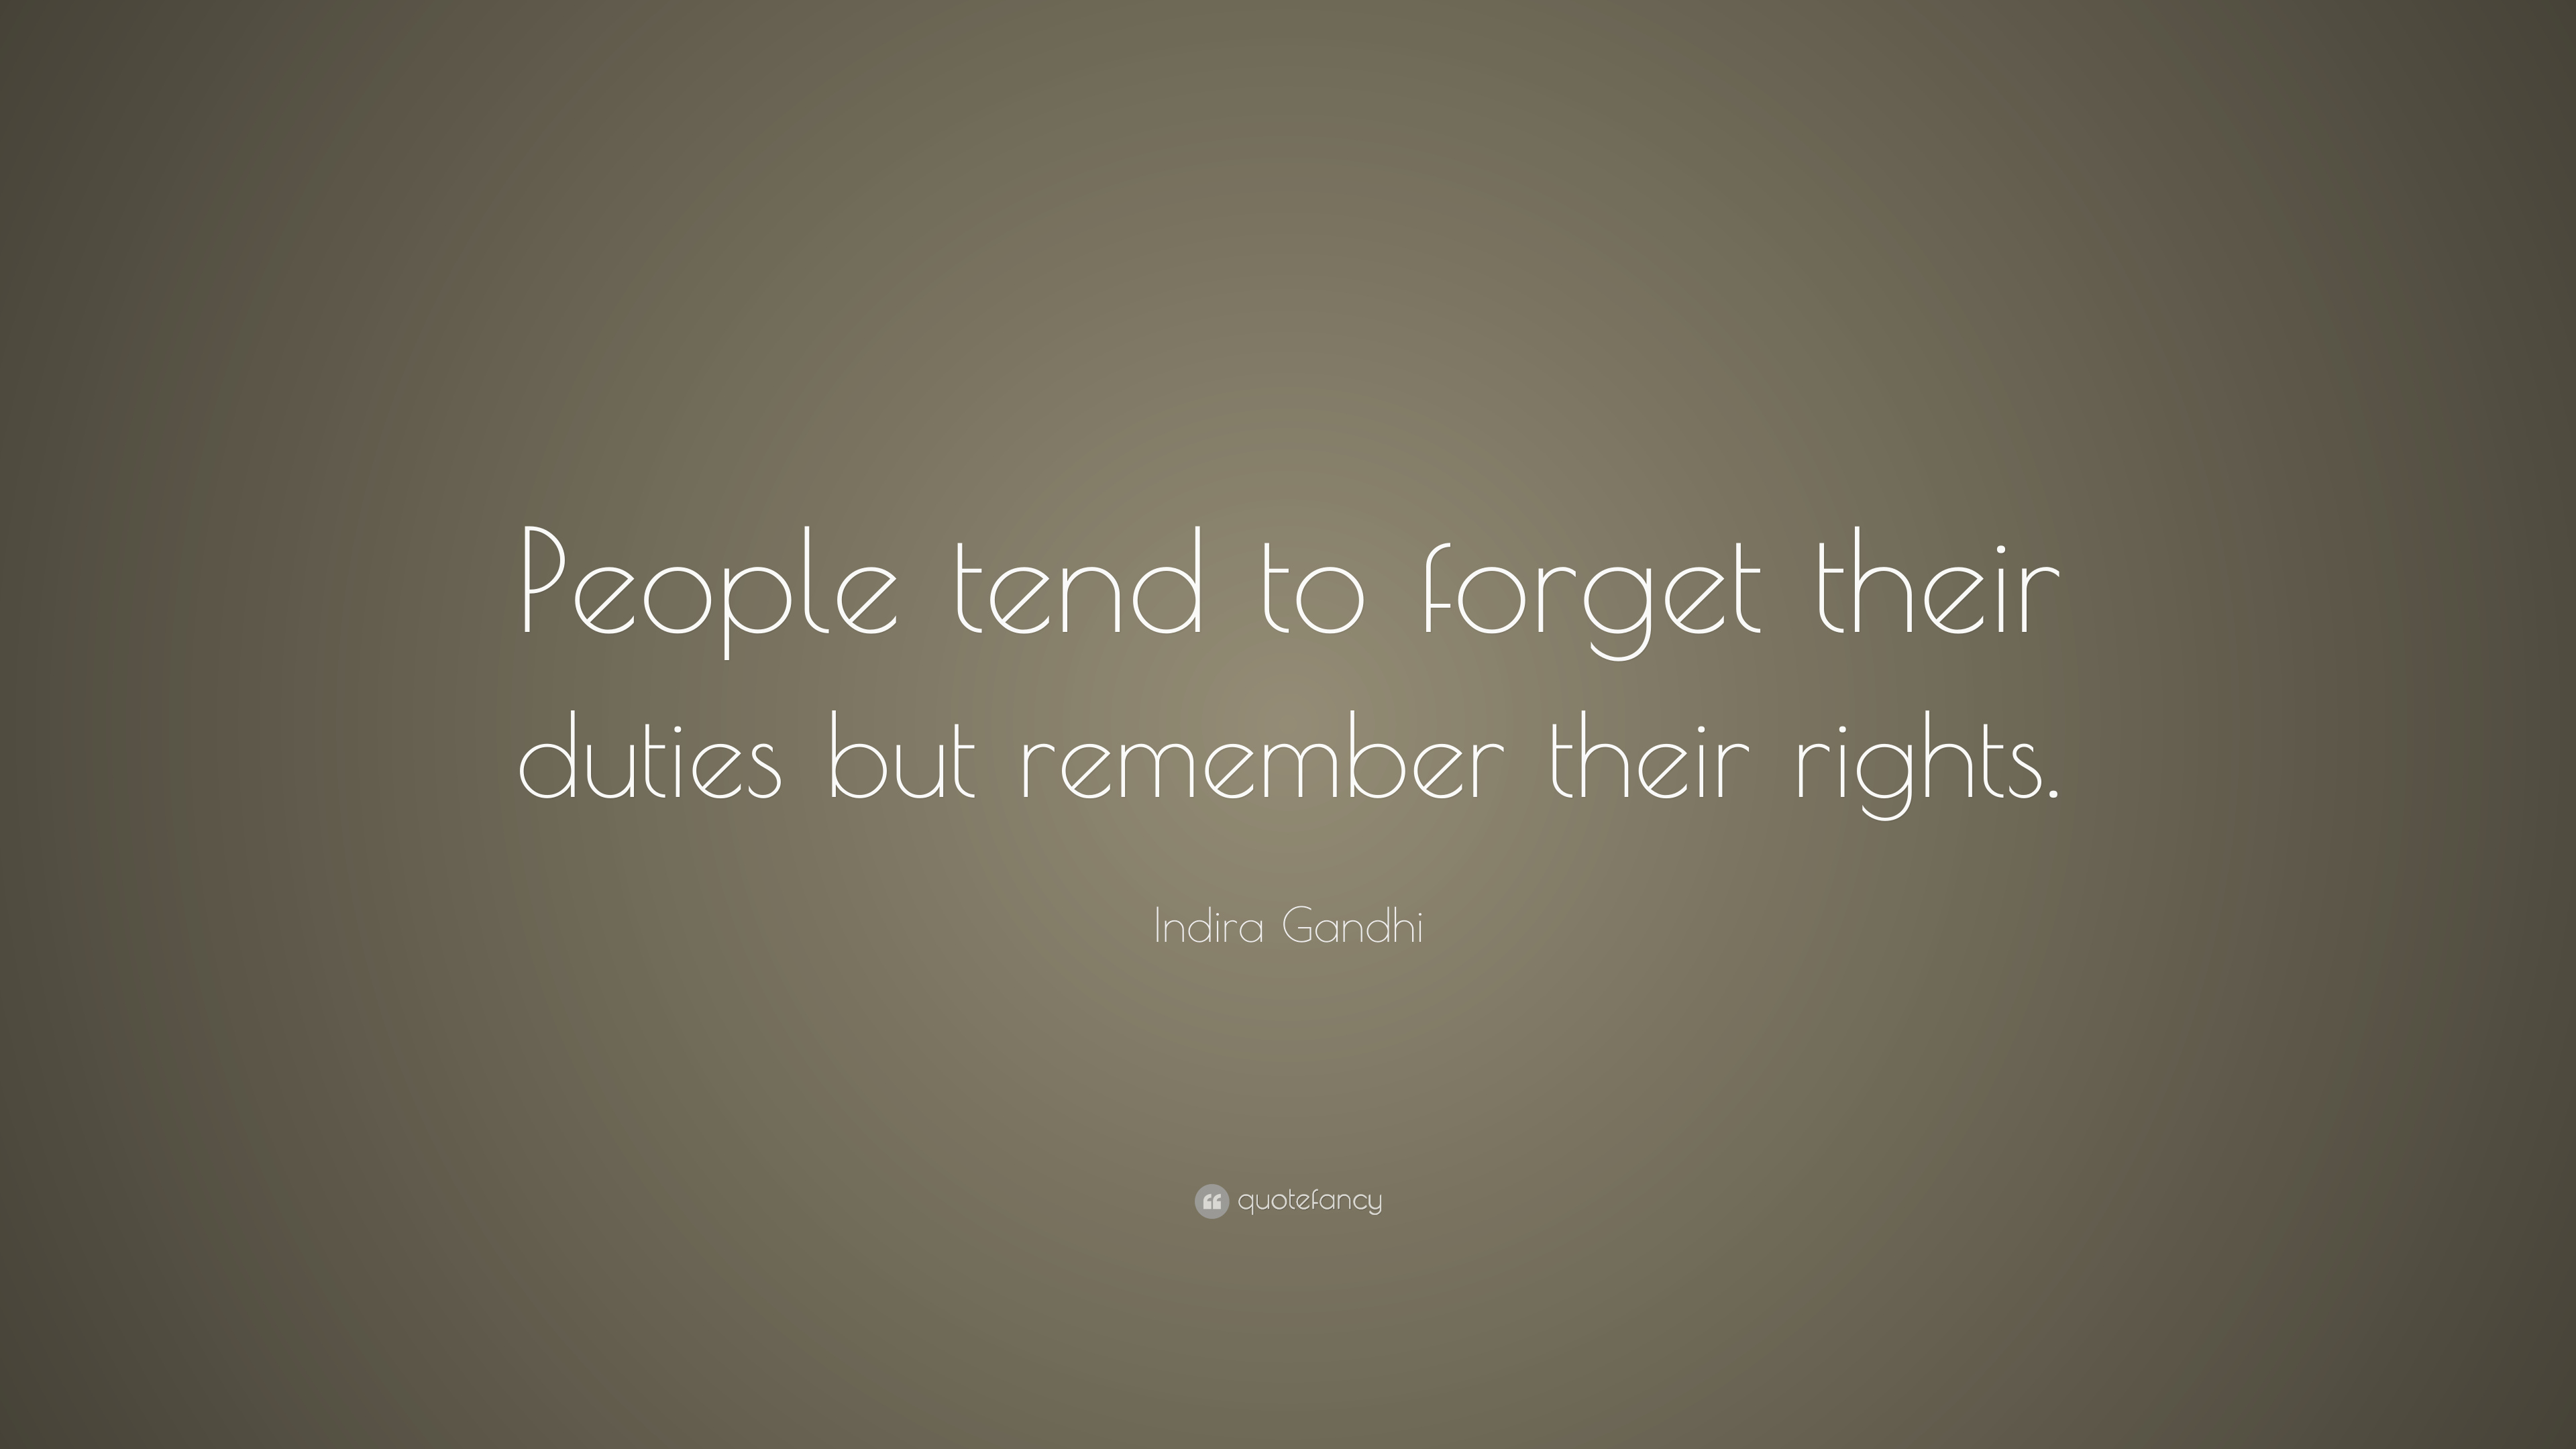 Indira gandhi quote people tend to forget their duties but indira gandhi quote people tend to forget their duties but remember their rights altavistaventures Image collections